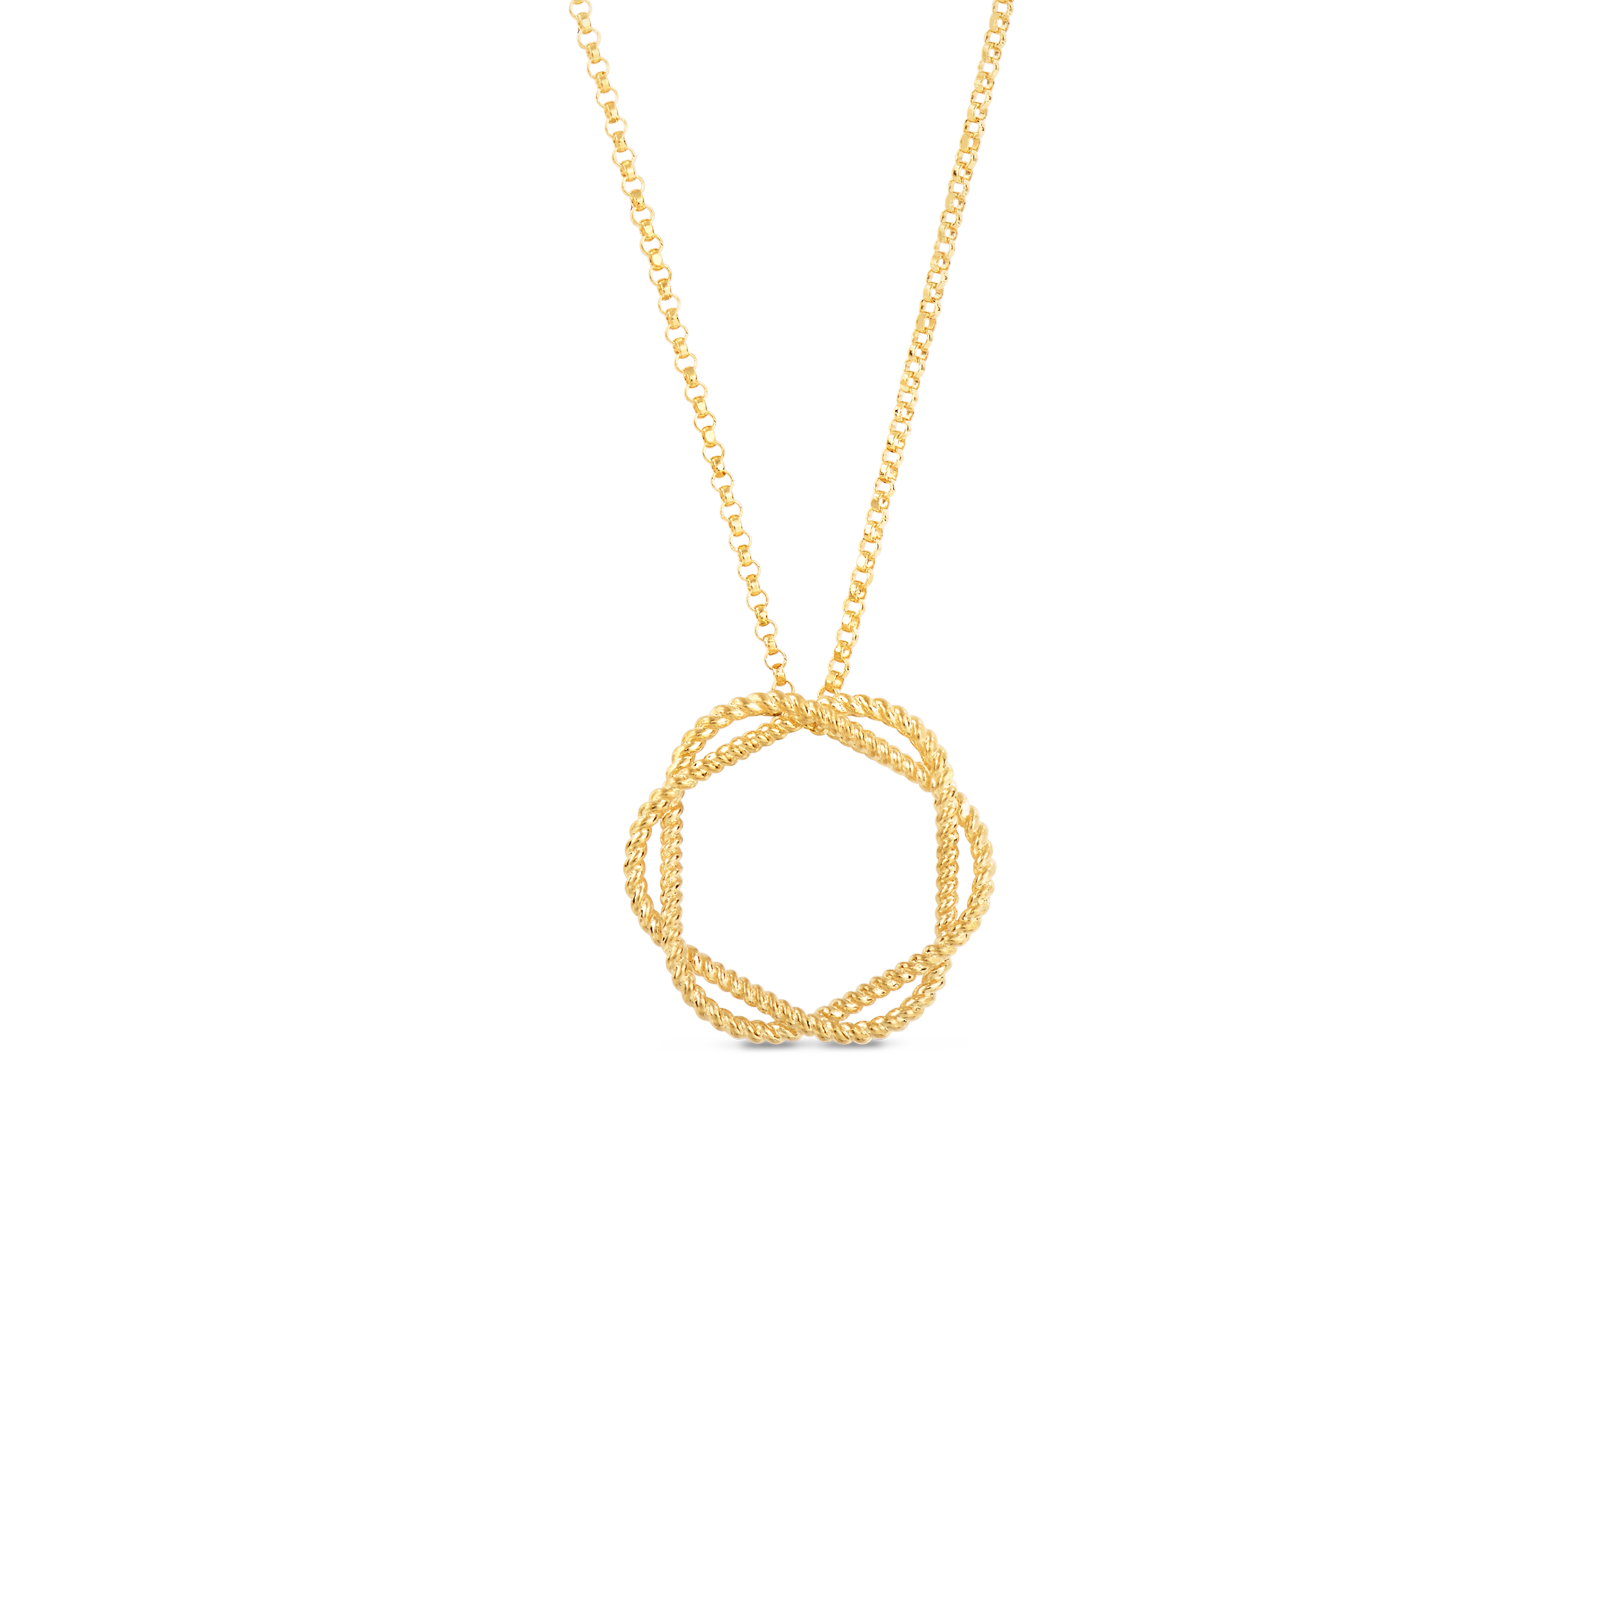 Roberto coins italian gold circle pendant in new barocco roberto coin barocco 18k yellow gold circle pendant aloadofball Image collections